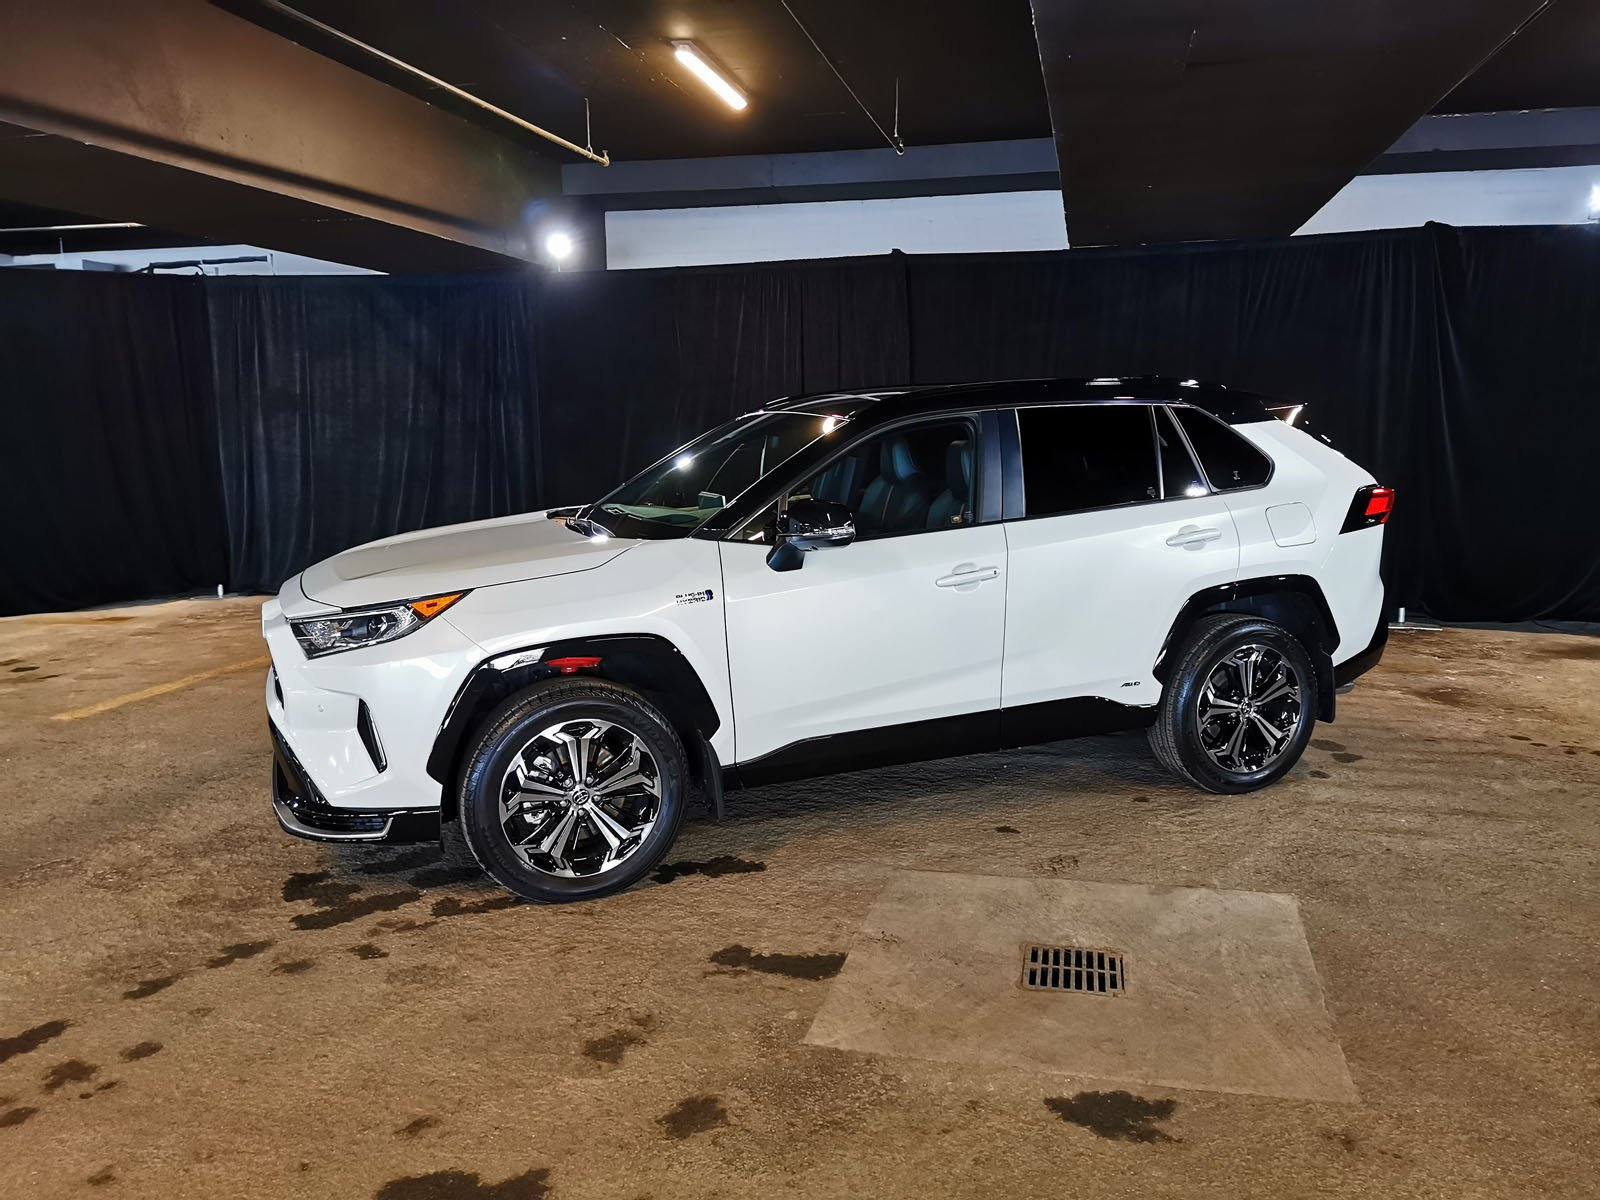 2021 Toyota Rav4 Prime First Drive Review Plug In Hybrid Shows Its Full Potential Motor Illustrated